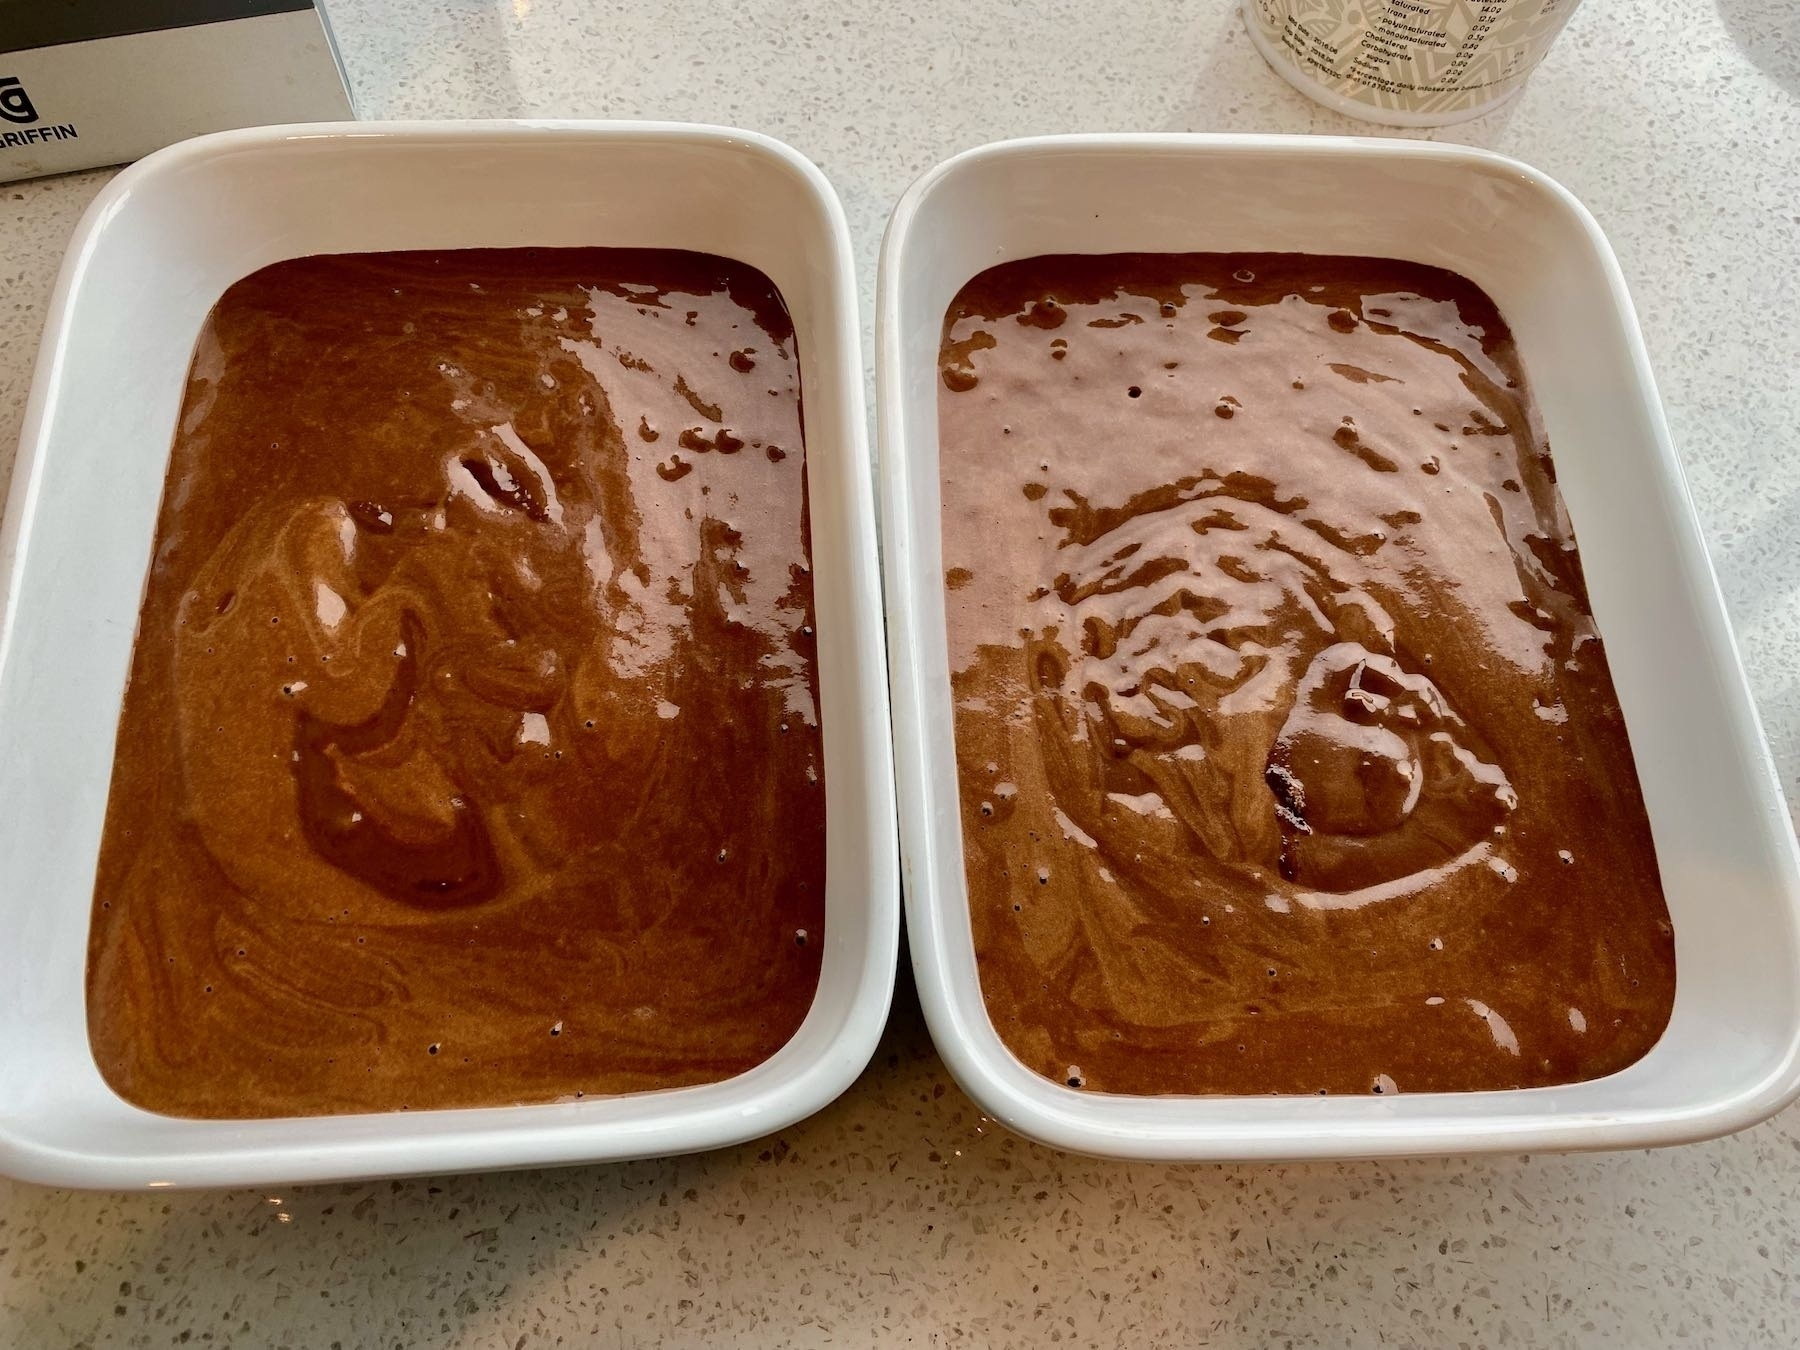 Uncooked cake in baking pans.